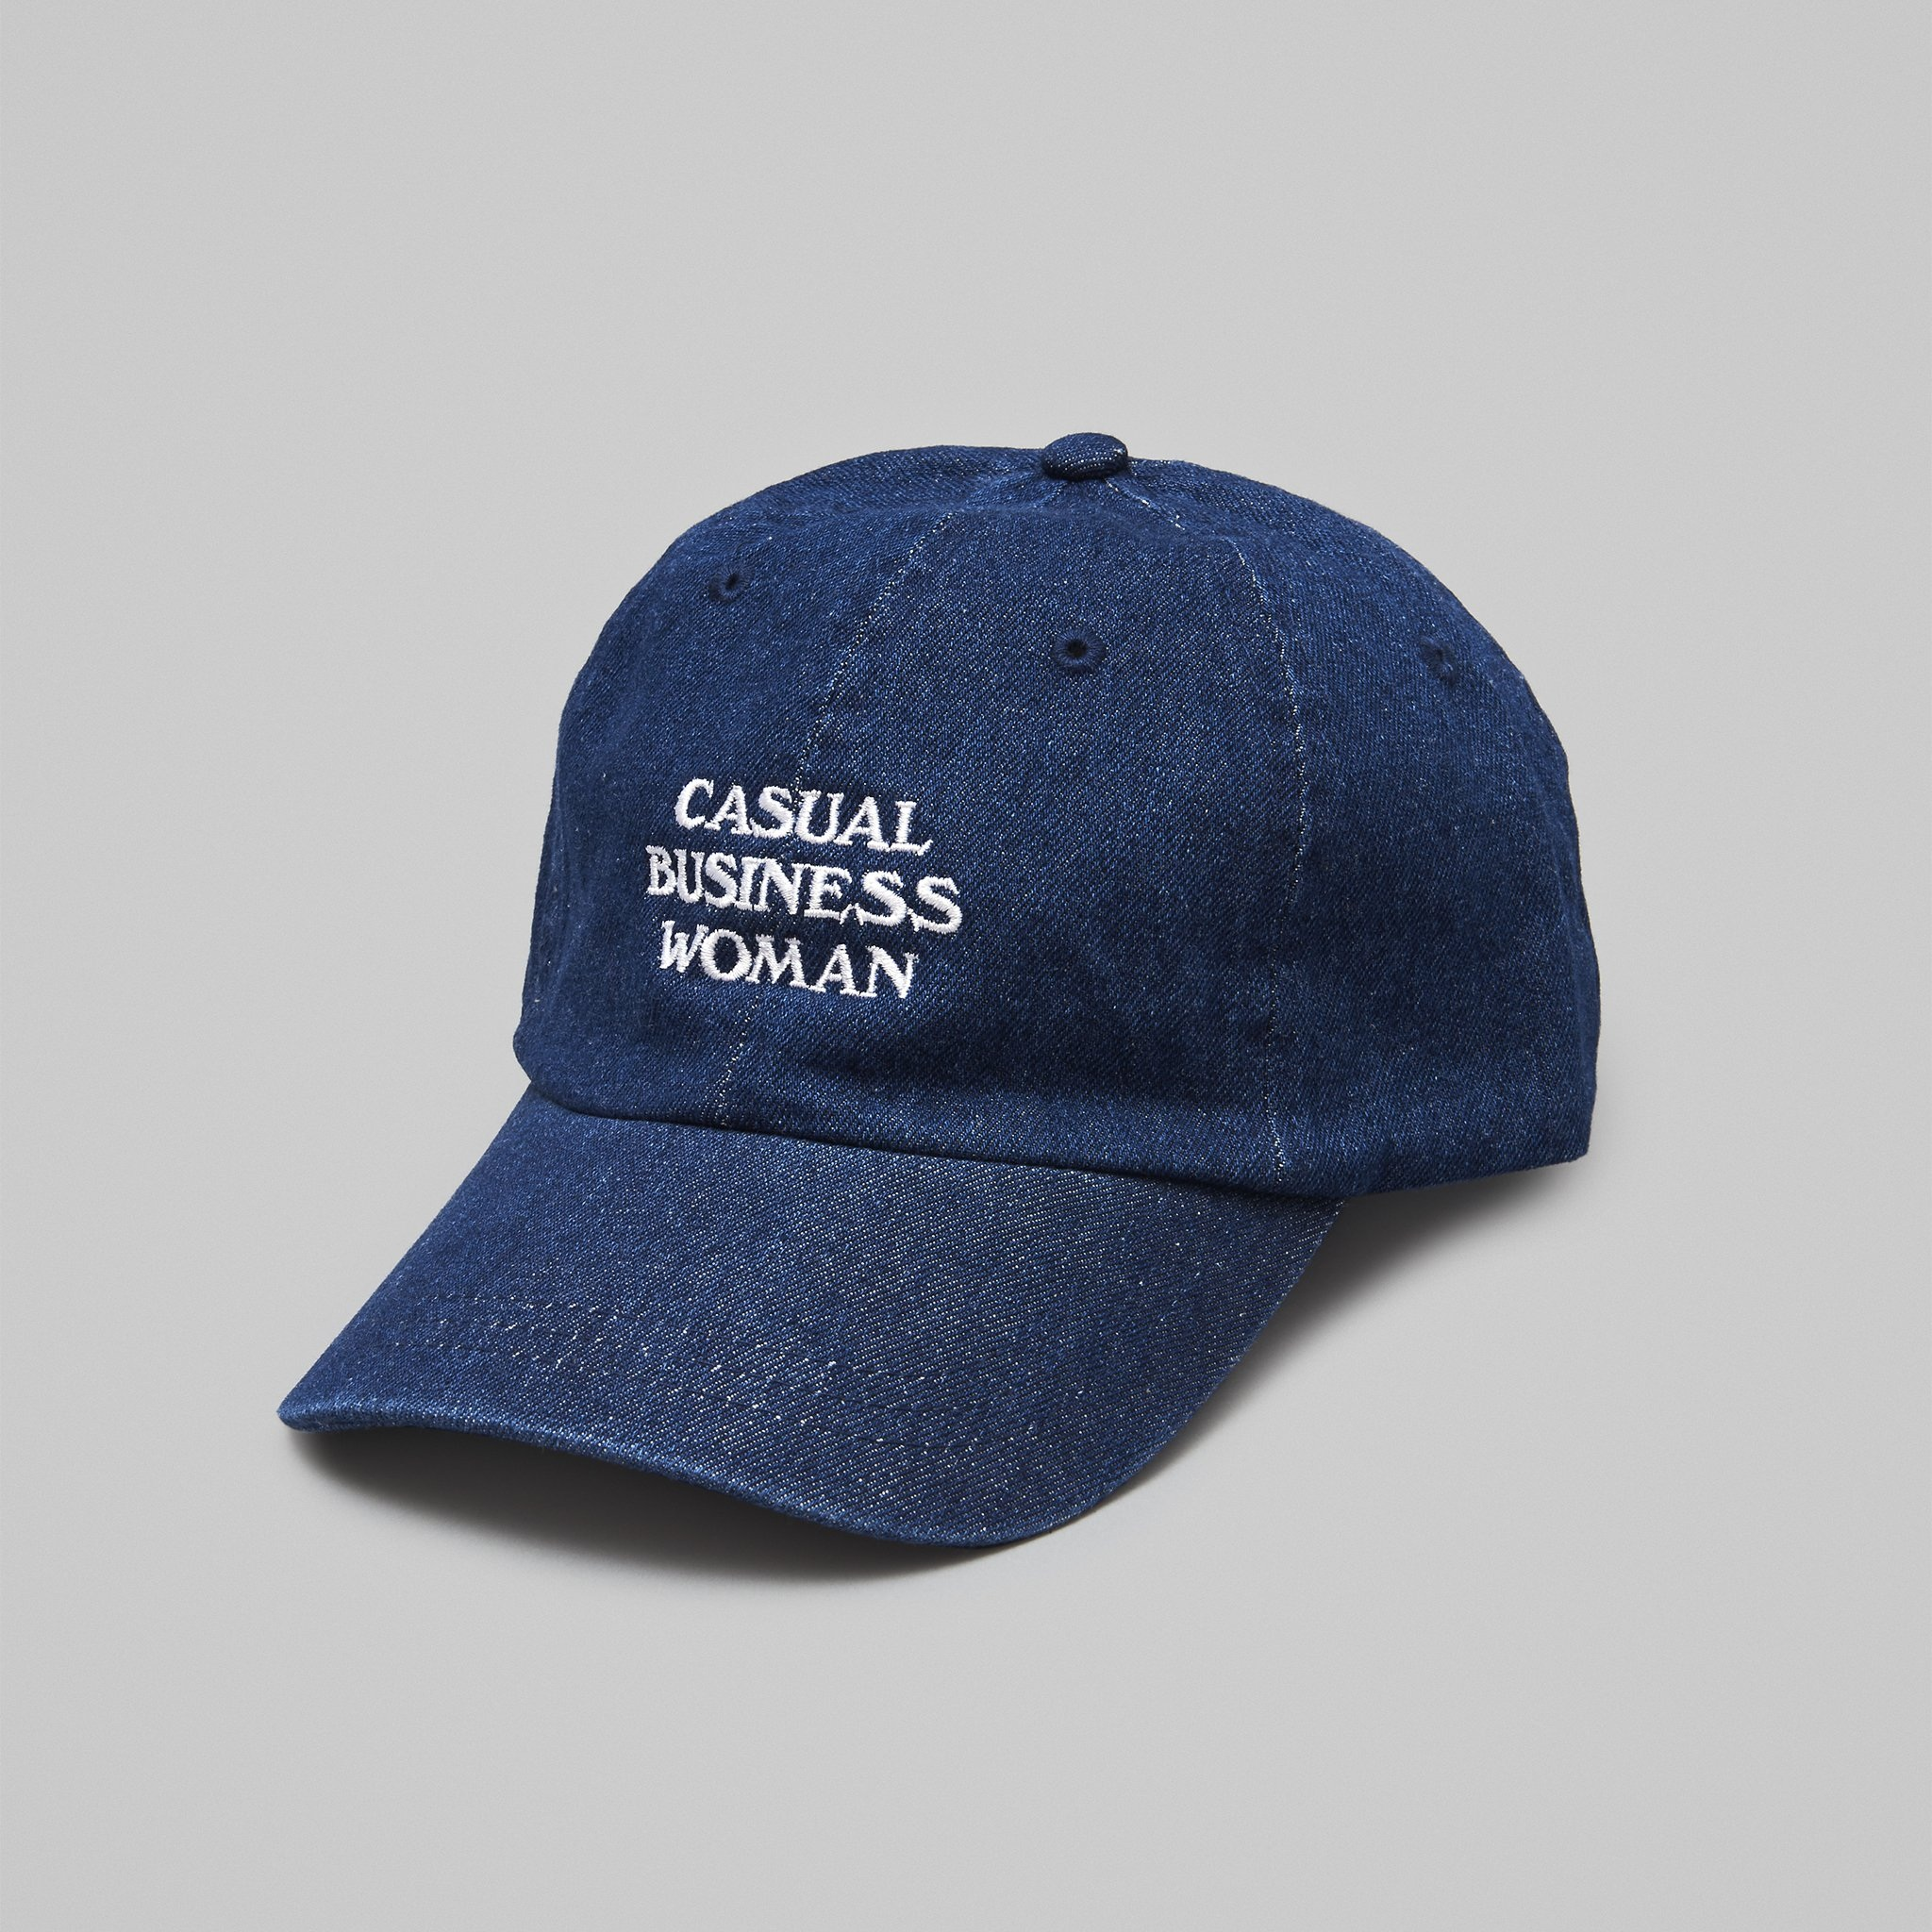 THE WING / CASUAL BUSINESS WOMAN CAP $30 -